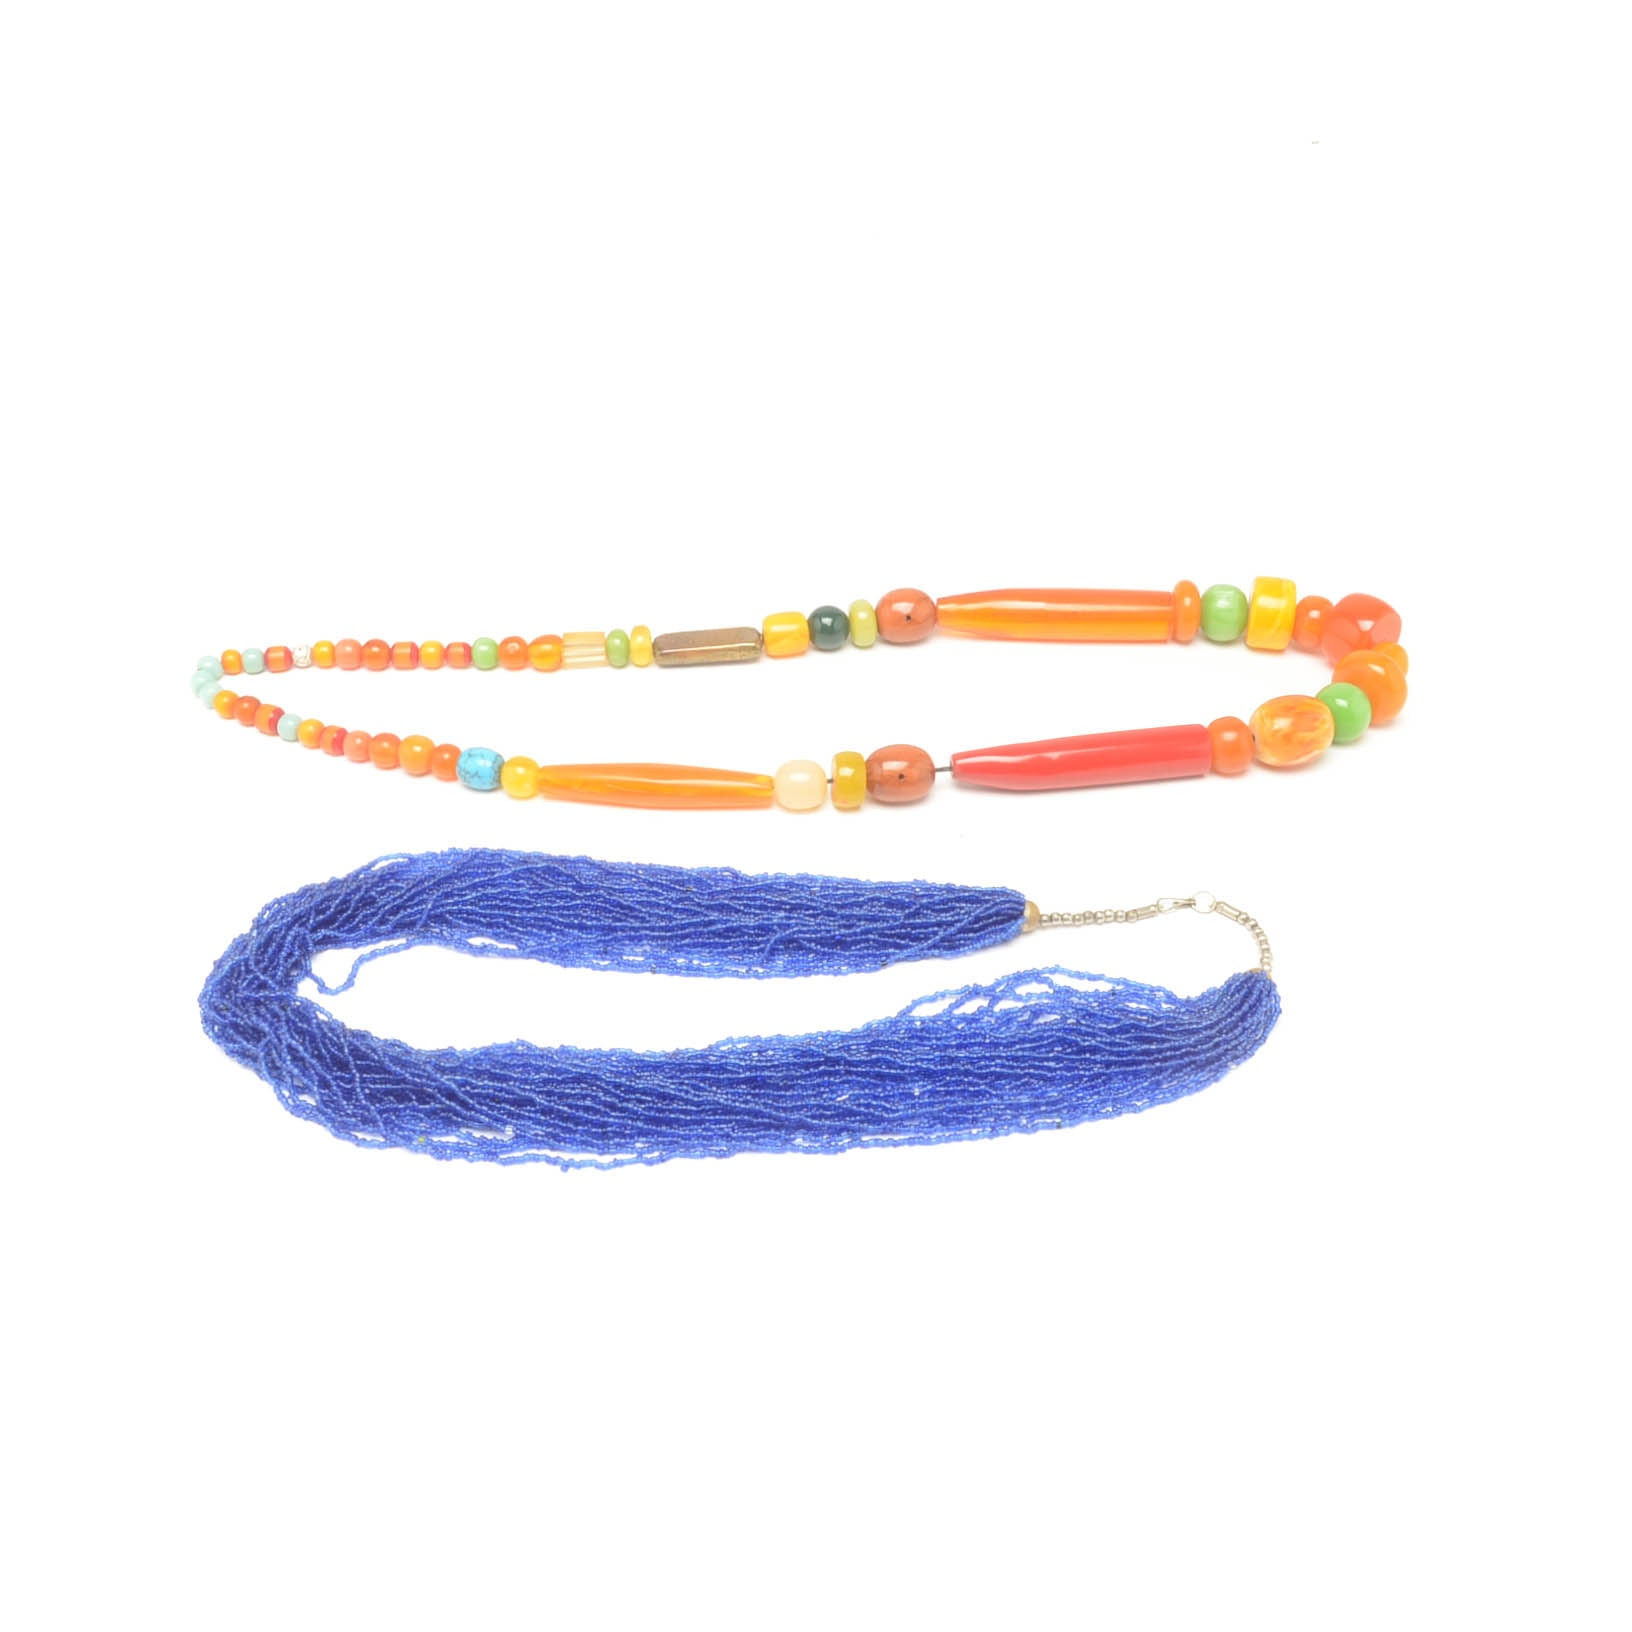 Pairing of Beaded Necklaces